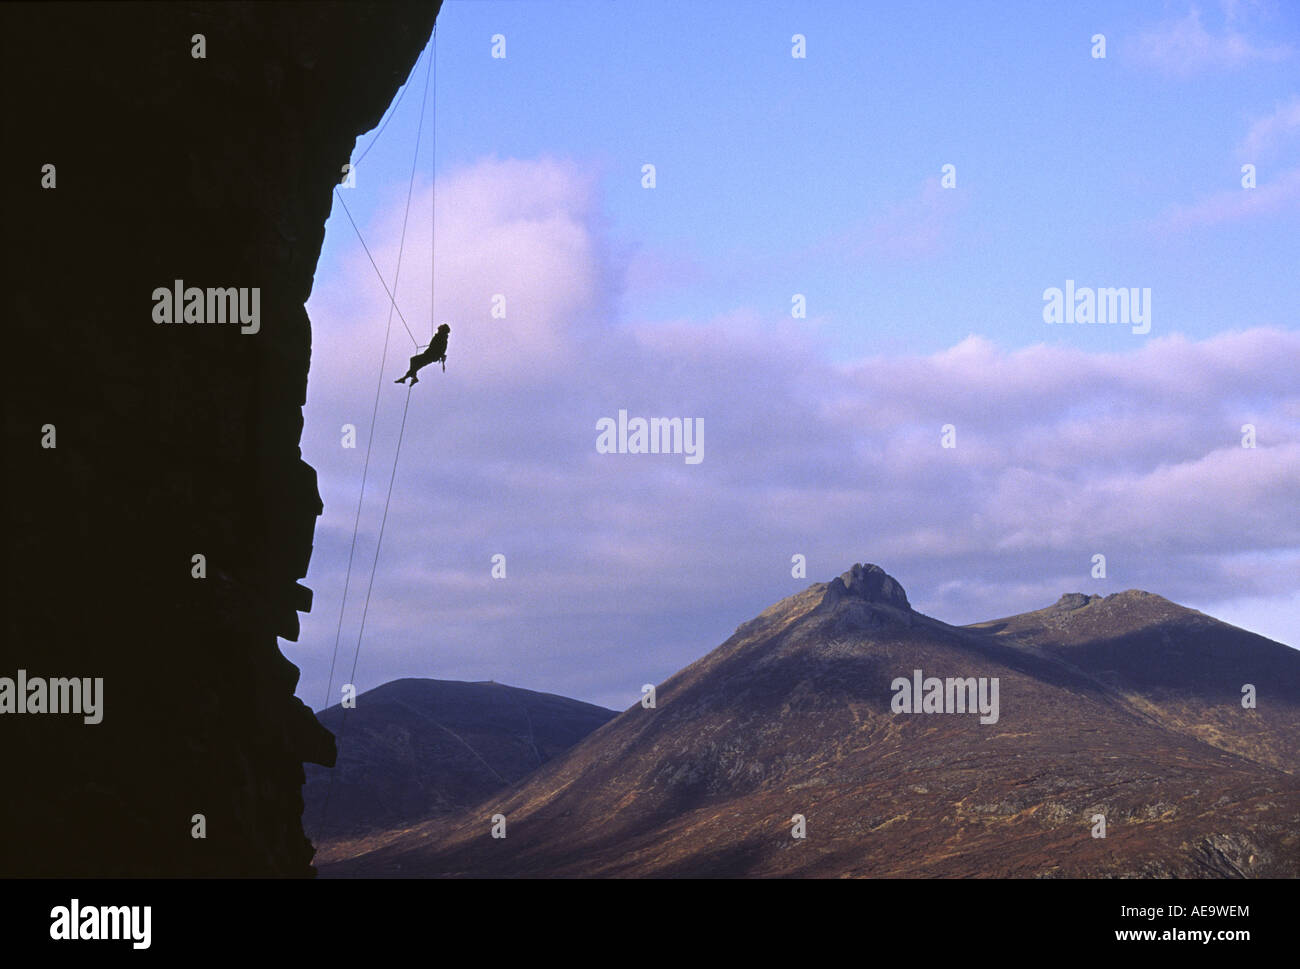 Rock Climber on a hard rock climb called Divided Years in the Mourne Mountains of Ireland - Stock Image